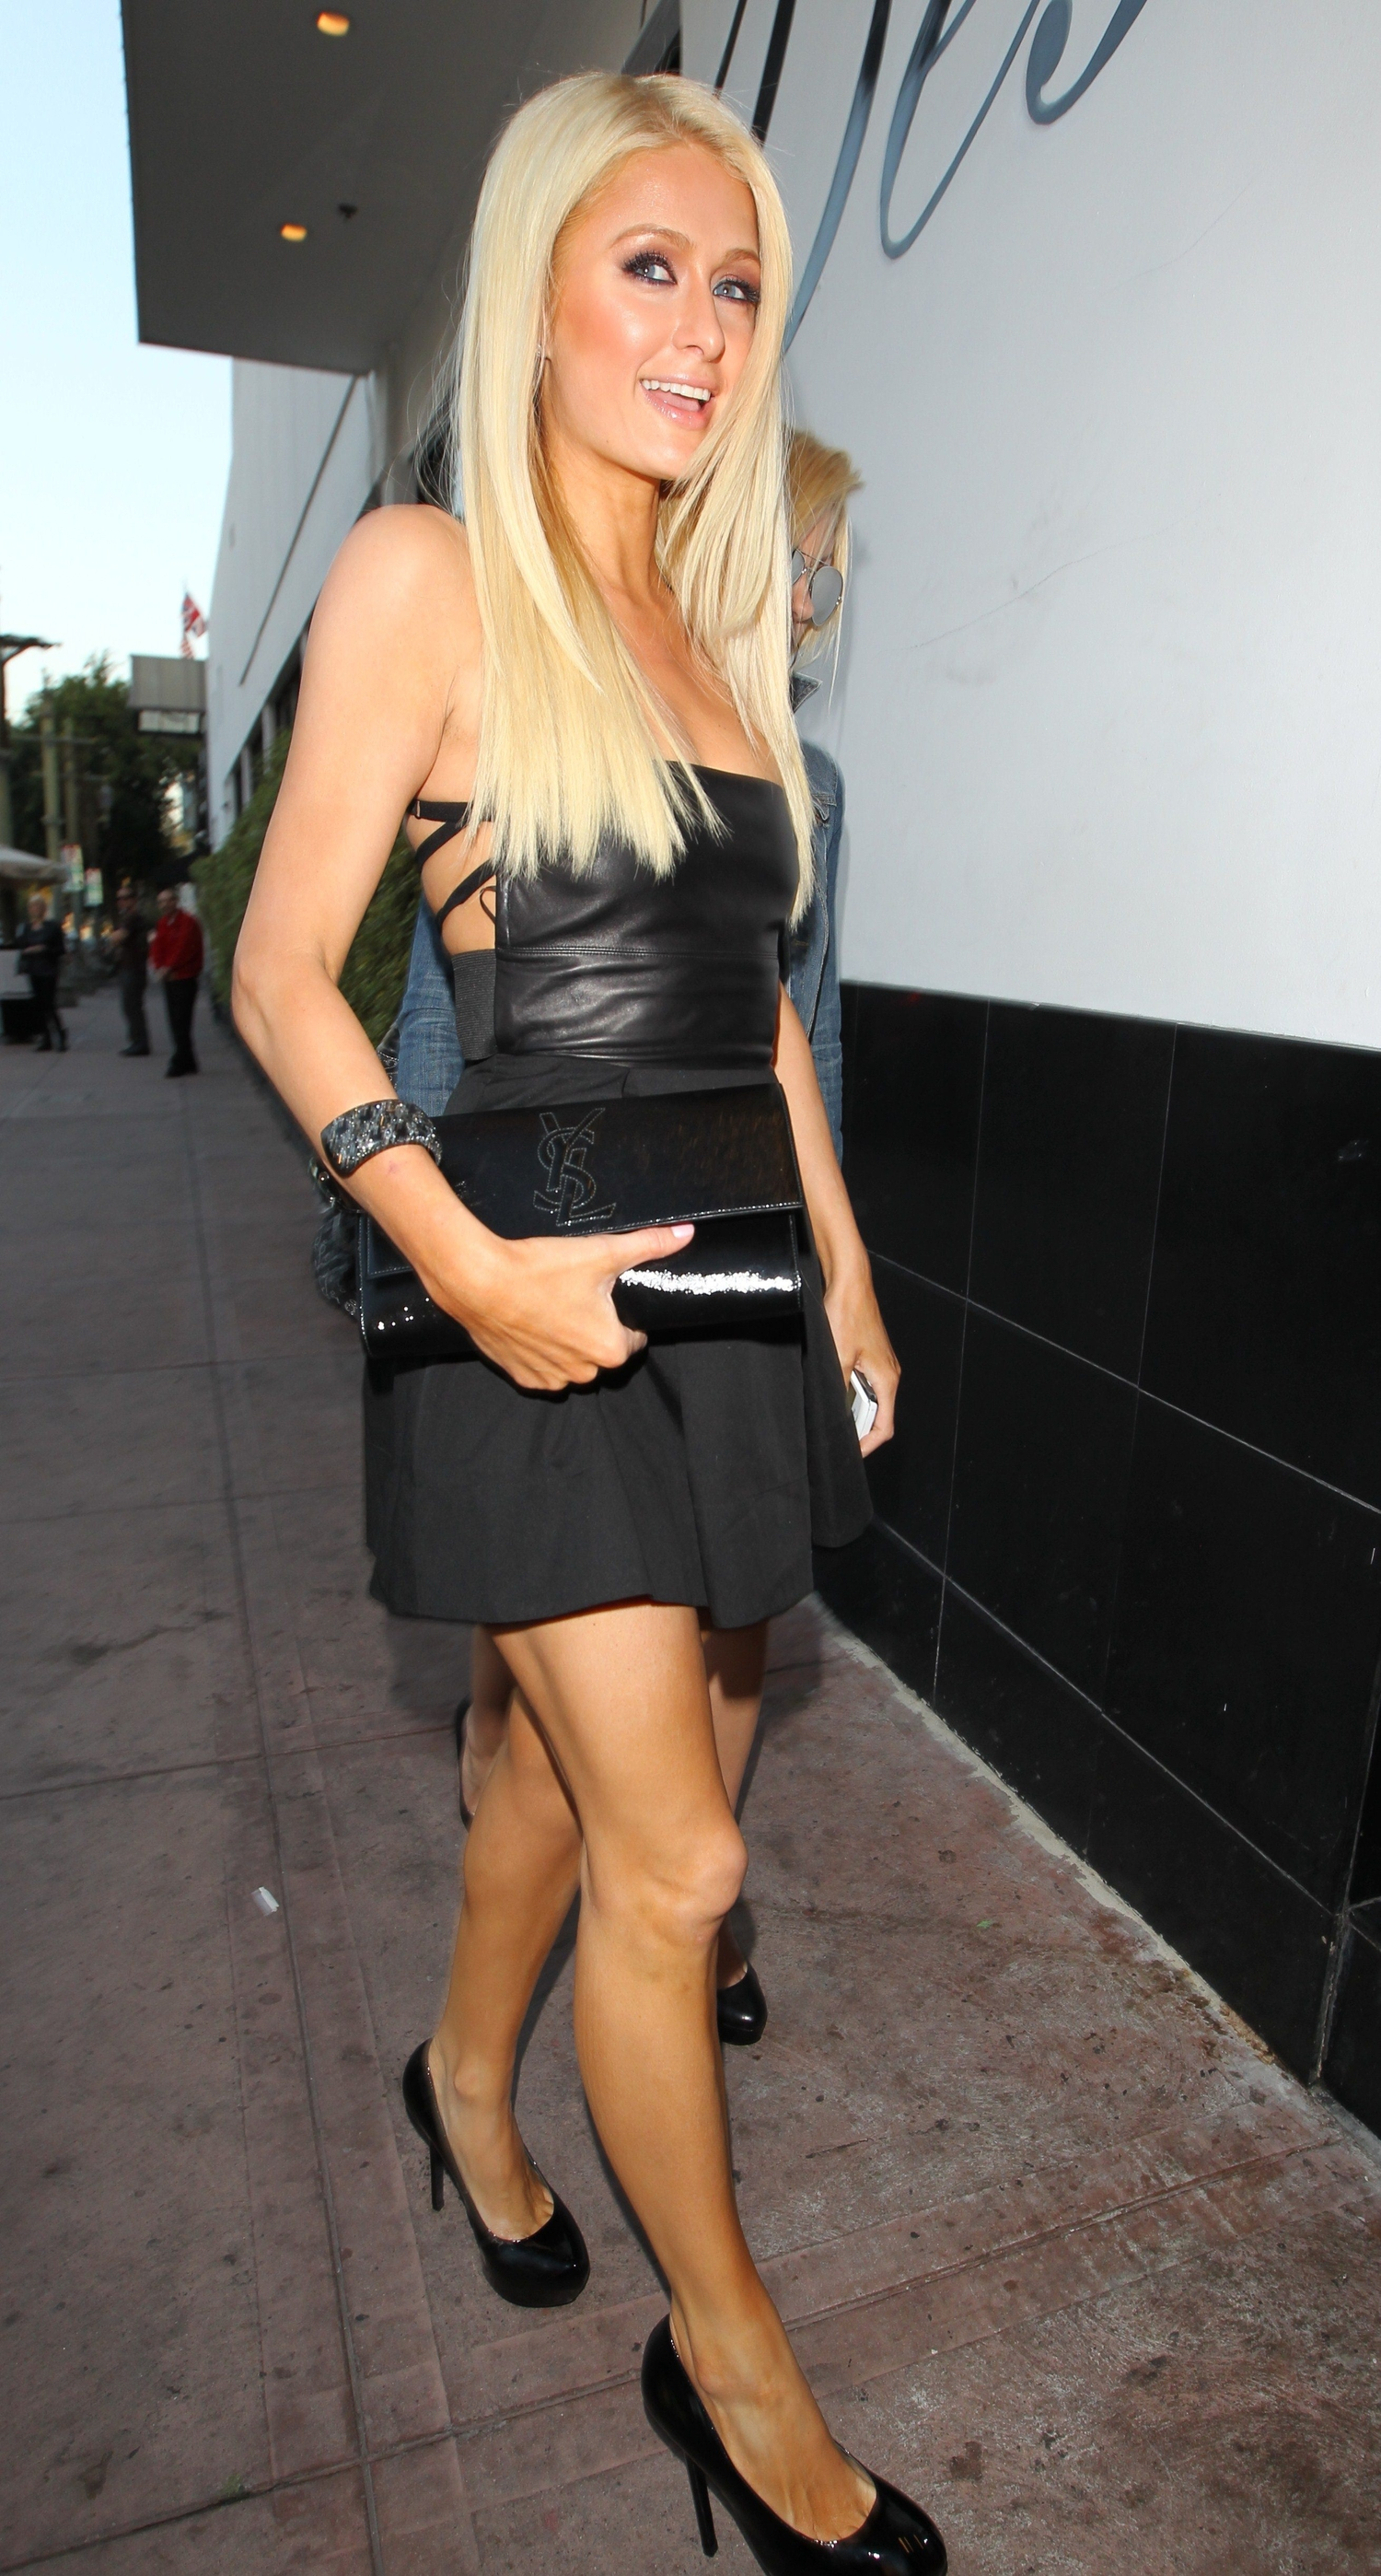 paris hilton arrives at beso in hollywood to film her reality tv show june 2011 gotceleb. Black Bedroom Furniture Sets. Home Design Ideas